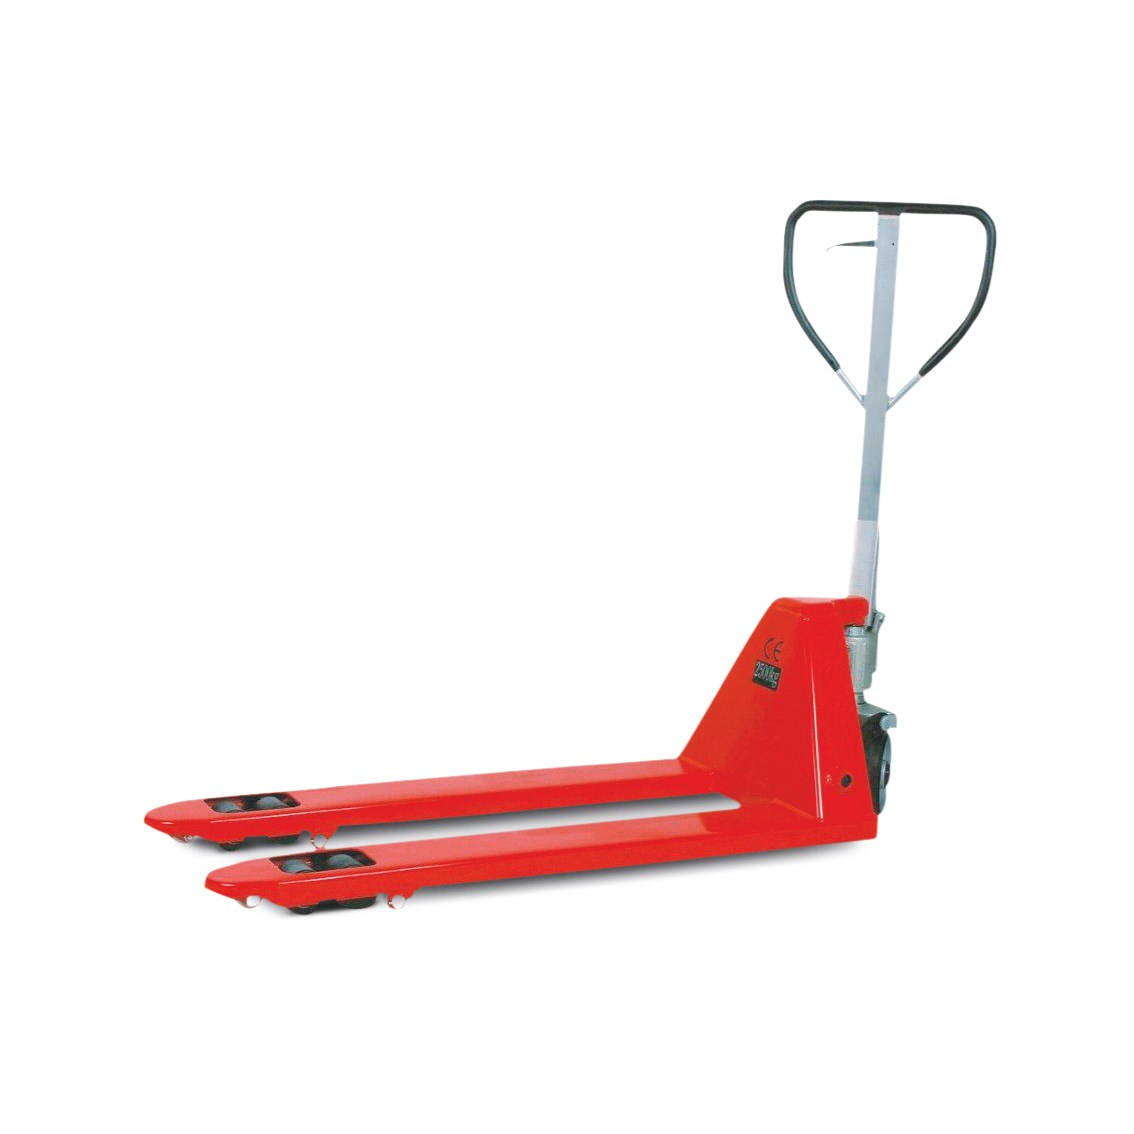 Pallet truck with high performance hydraulic pump